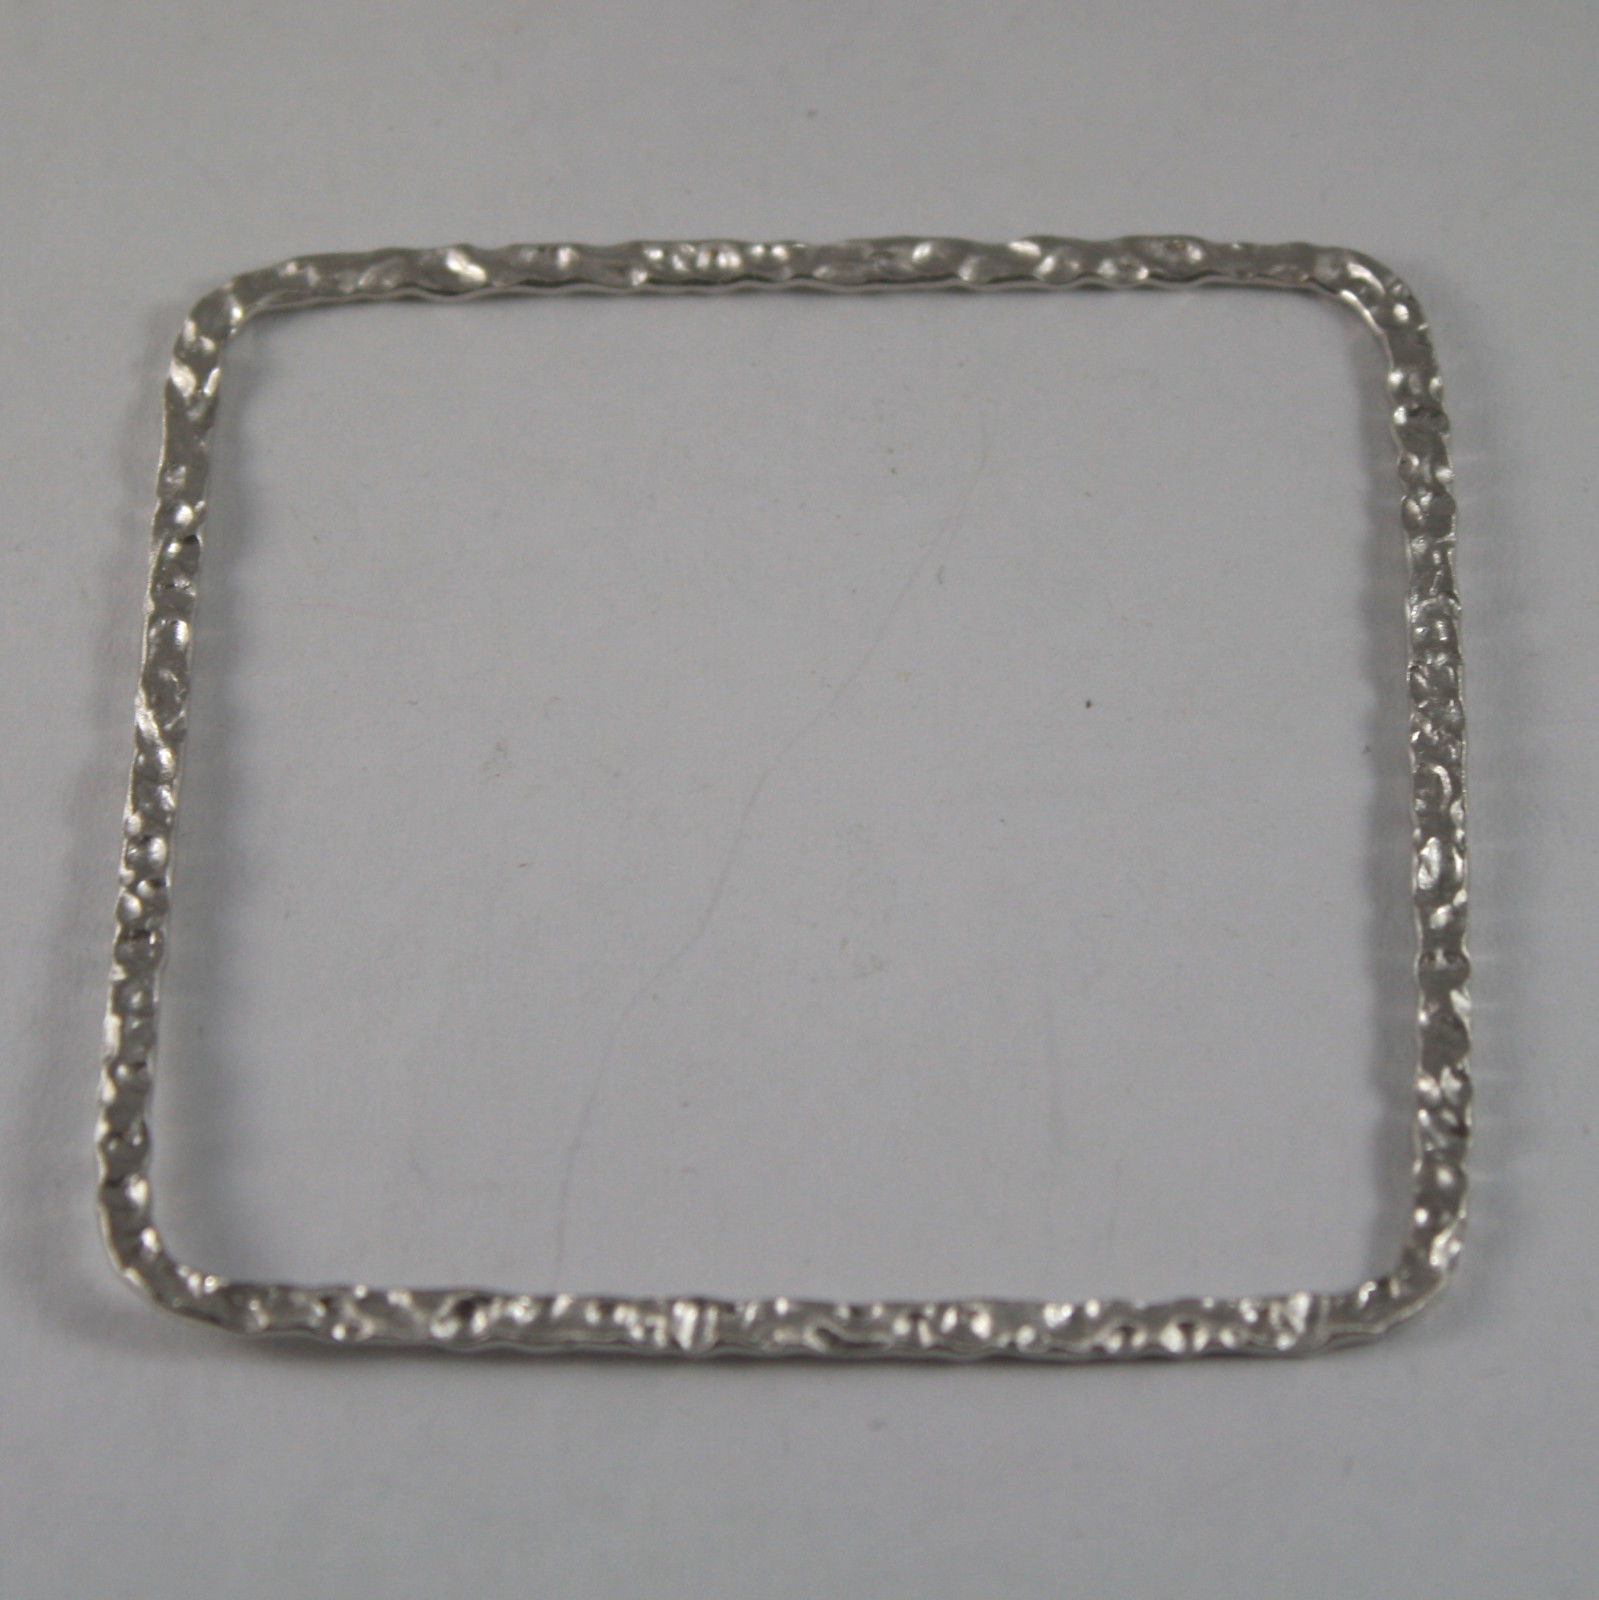 .925 RHODIUM SILVER RIGID BRACELET WITH PROCESSING TO HAMMERING